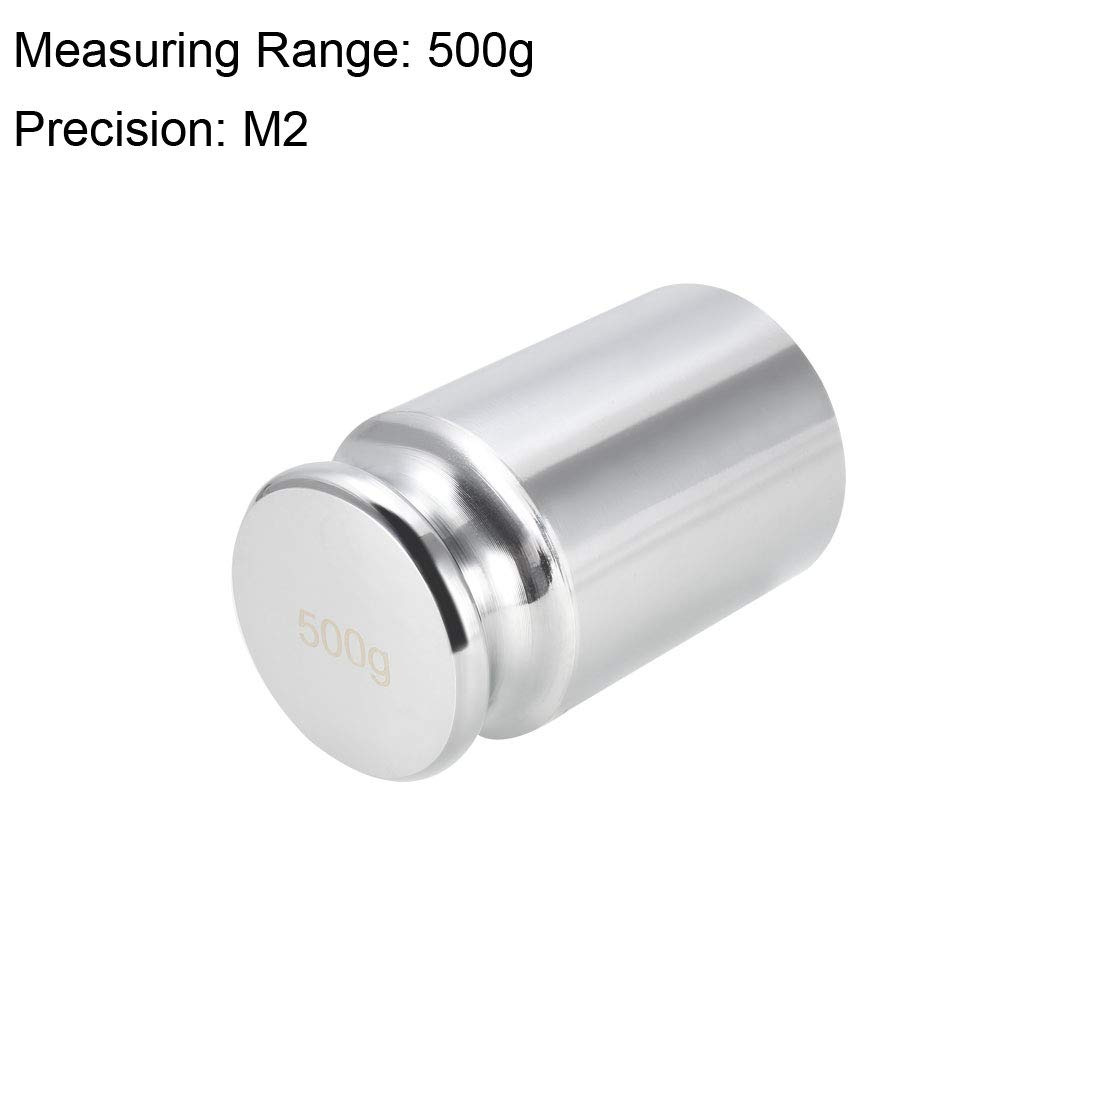 sourcing map Gram Calibration Weight 500g M2 Precision Chrome Plated Steel for Digital Balance Scales